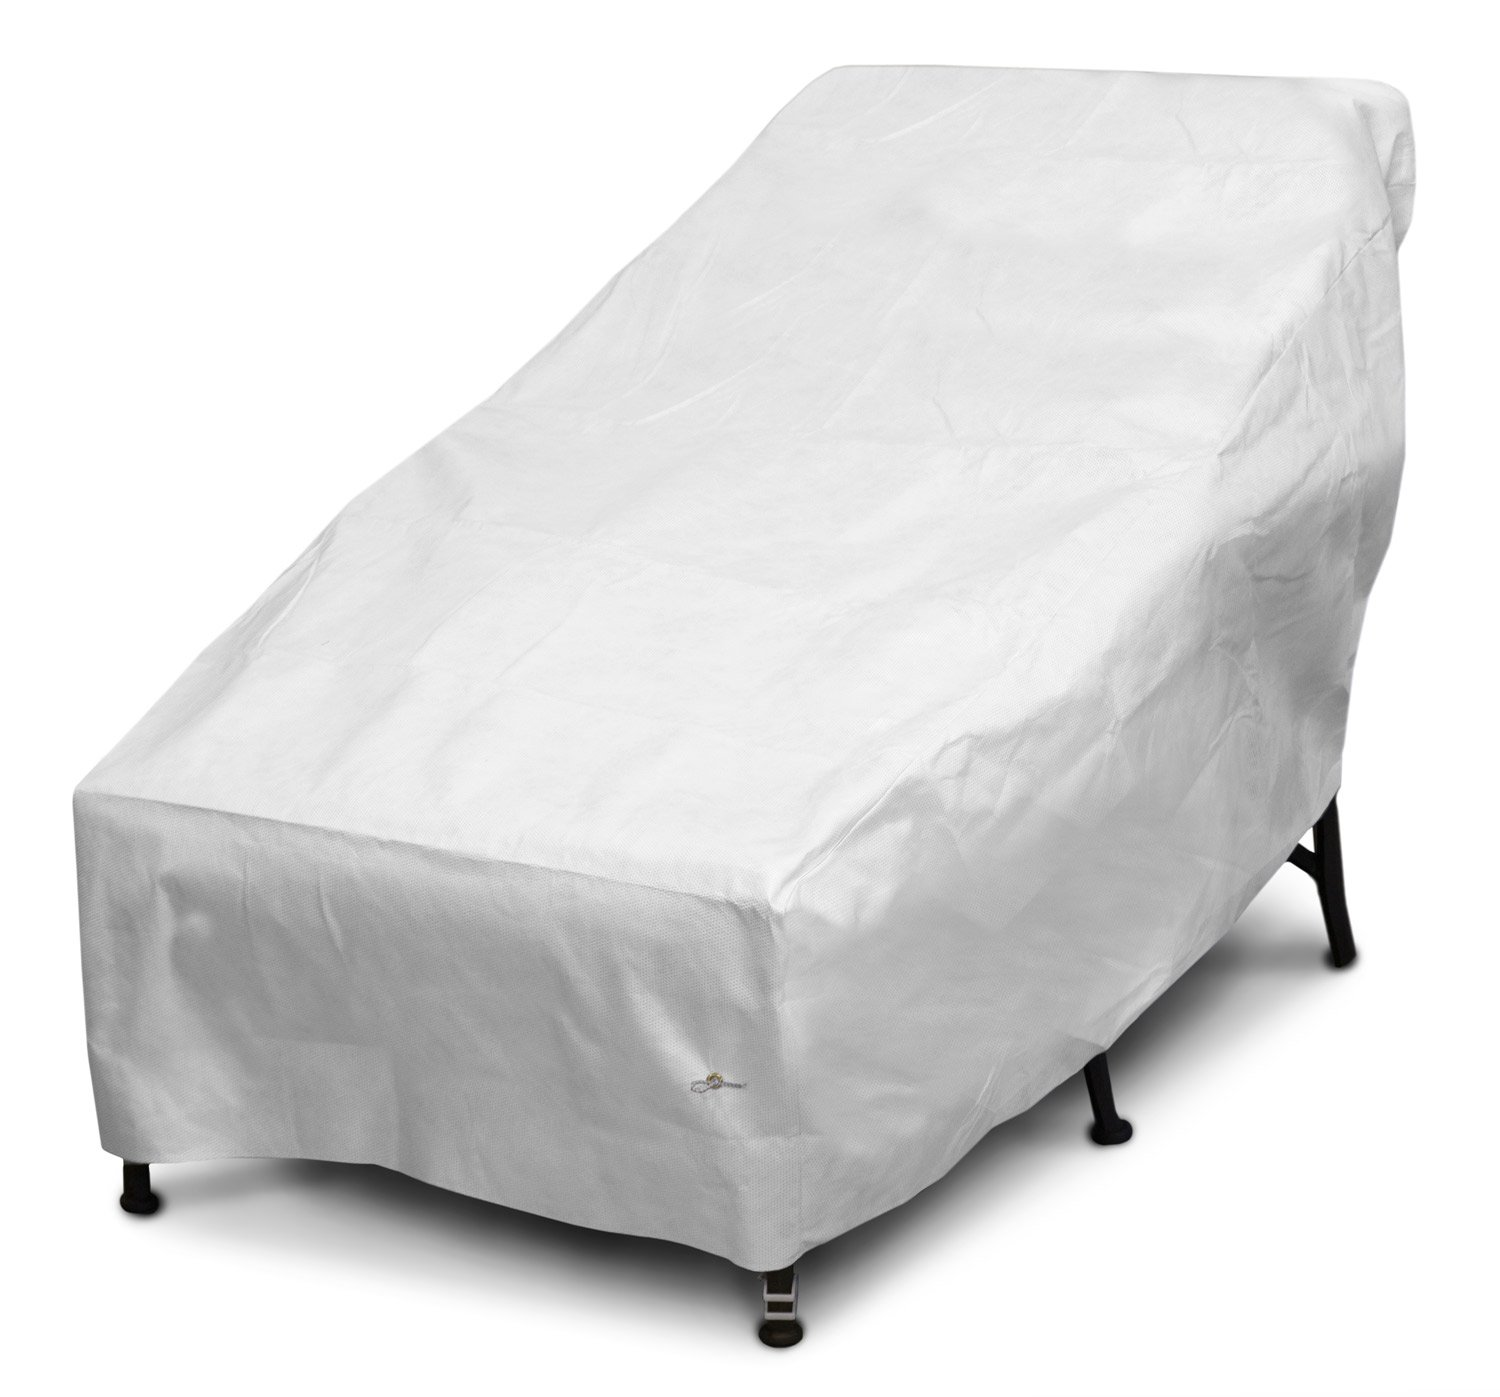 KoverRoos DuPont Tyvek 29628 Wide Chaise Cover, 82-Inch Length by 42-Inch Width by 36-Inch Height, White